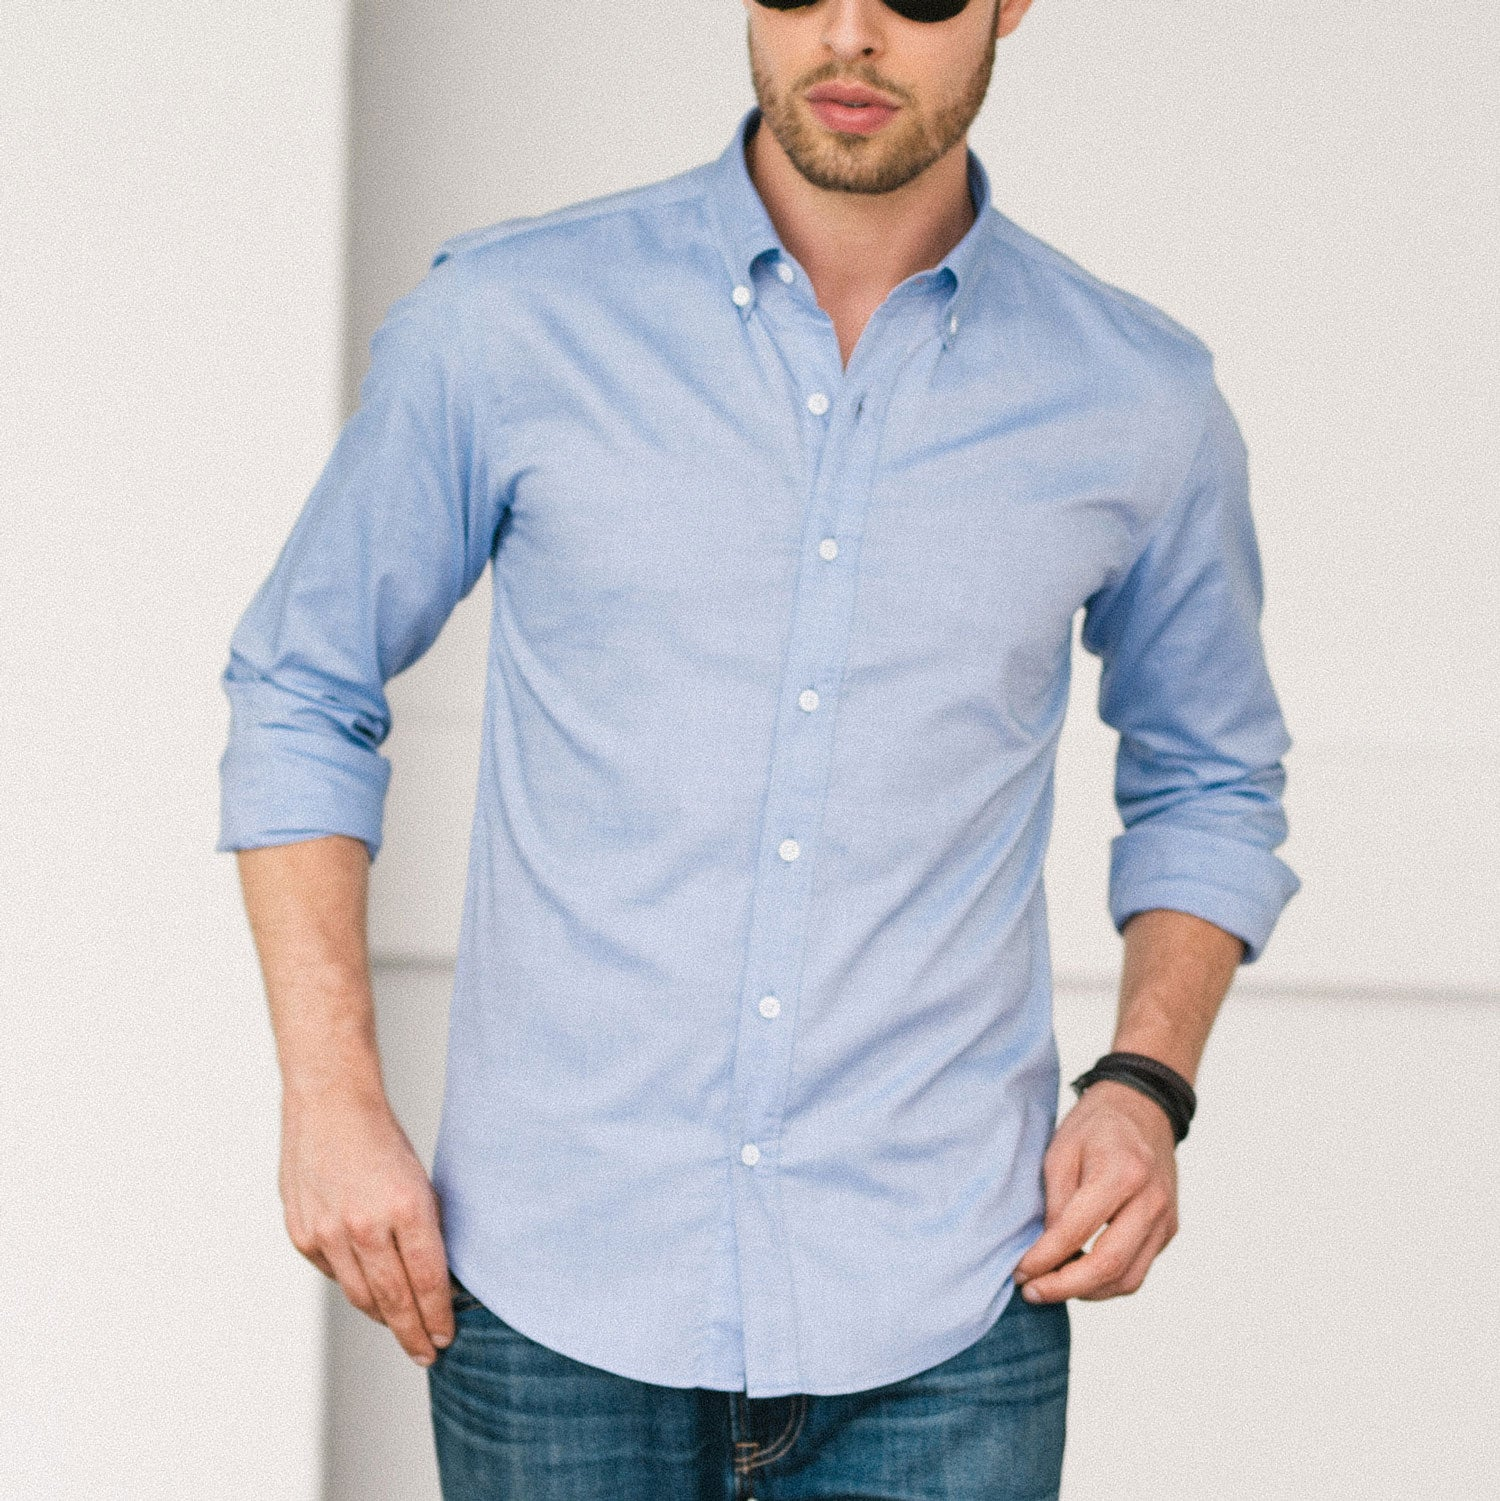 Dress shirt with tailored fit